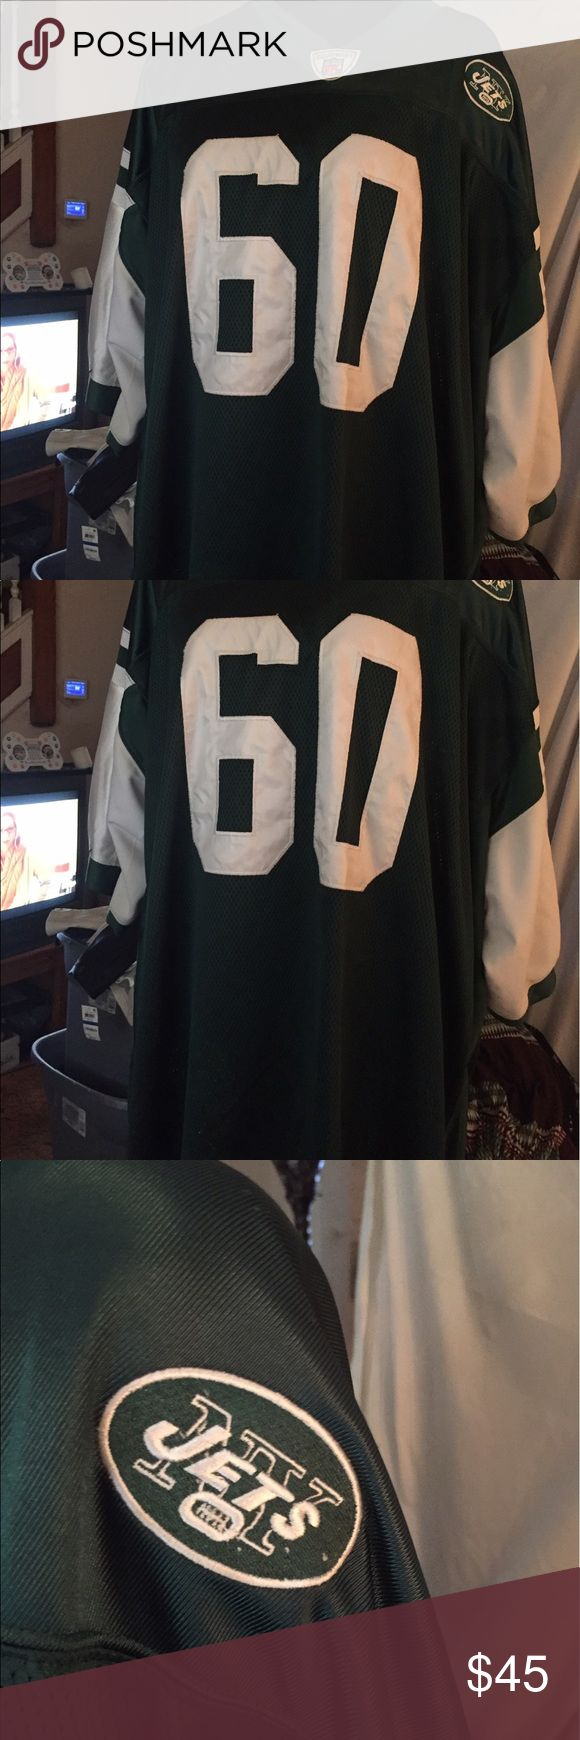 New York Jets Ferguson 60 Jersey New. STUNNING Size 60 of the New York Jets Jersey. A must for Jets fans. Condition is immaculate. Makes a wonderful full gift for the hubby or boyfriend or for any man. Looks be this. Reebok Other